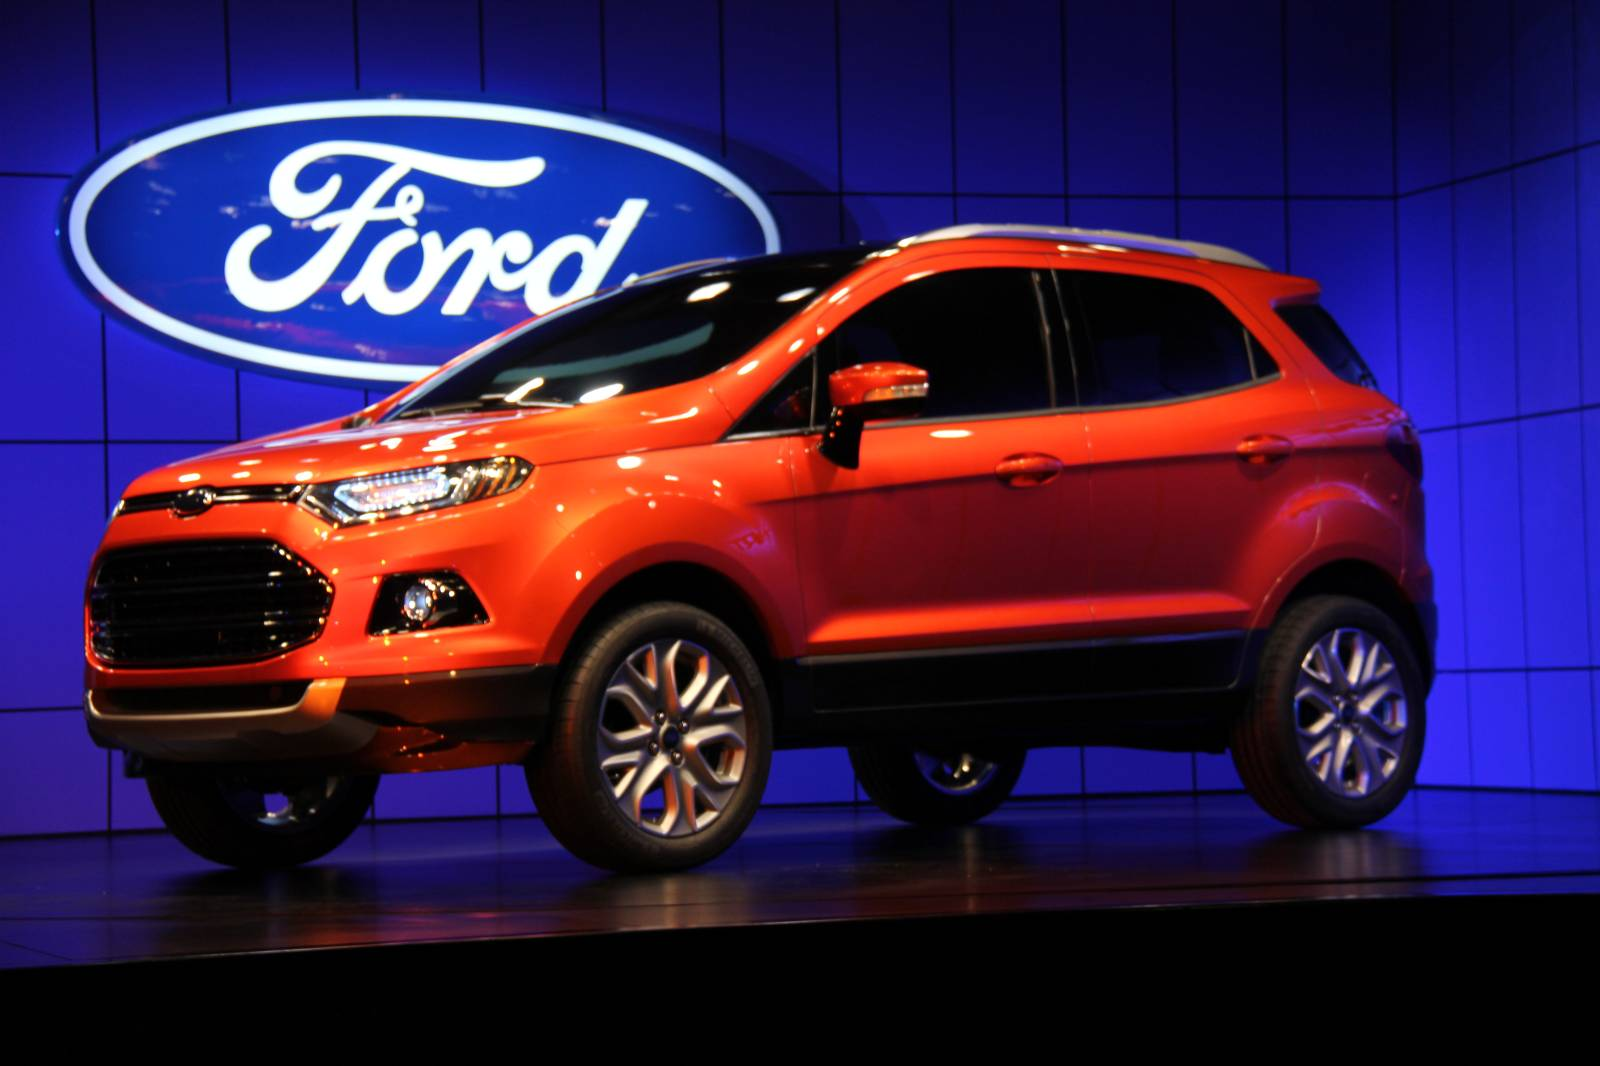 E Golf 2017 >> 2013 Ford EcoSport Crossover Launches At Delhi Motor Show